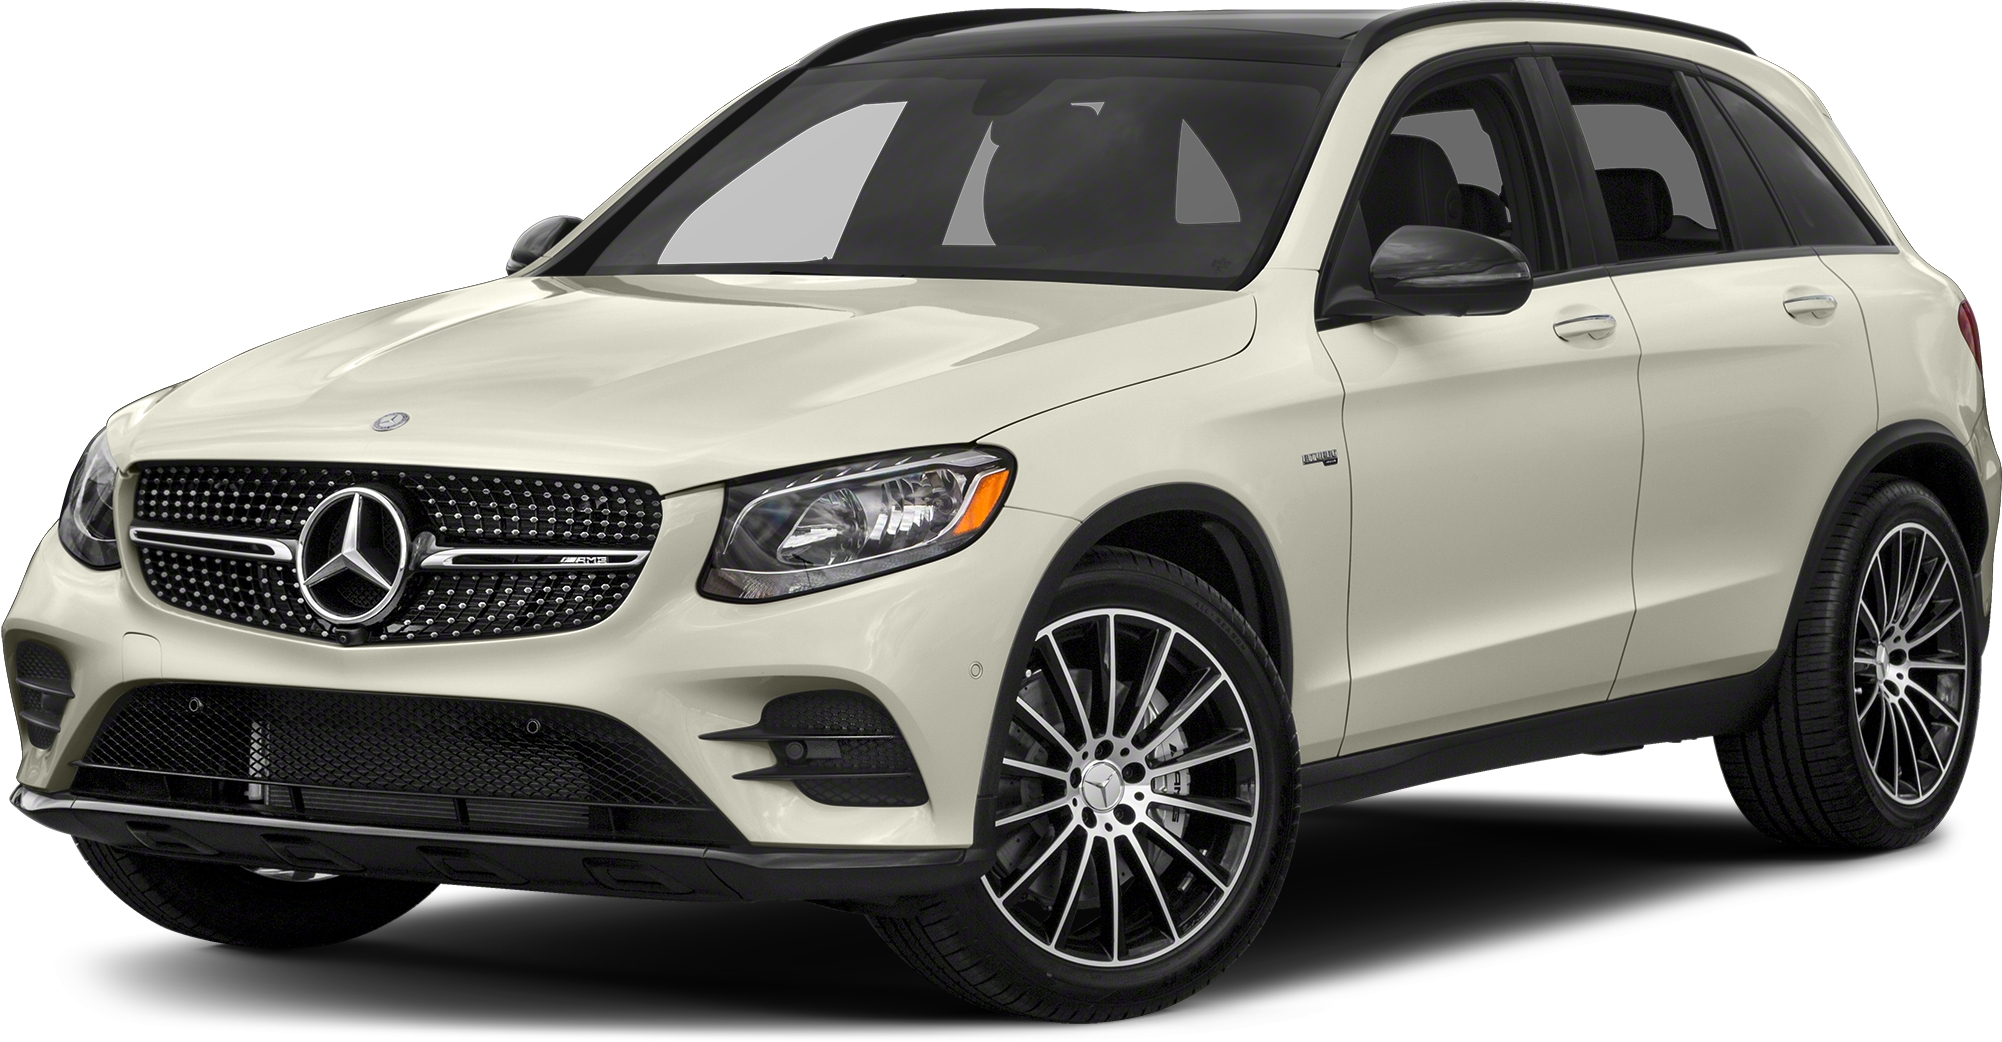 Lease Deals Near Me >> 2019 Mercedes-Benz GLC AMG® 43 SUV 28411778 | For Sale, Price, Purchase, Lease, Near Me ...